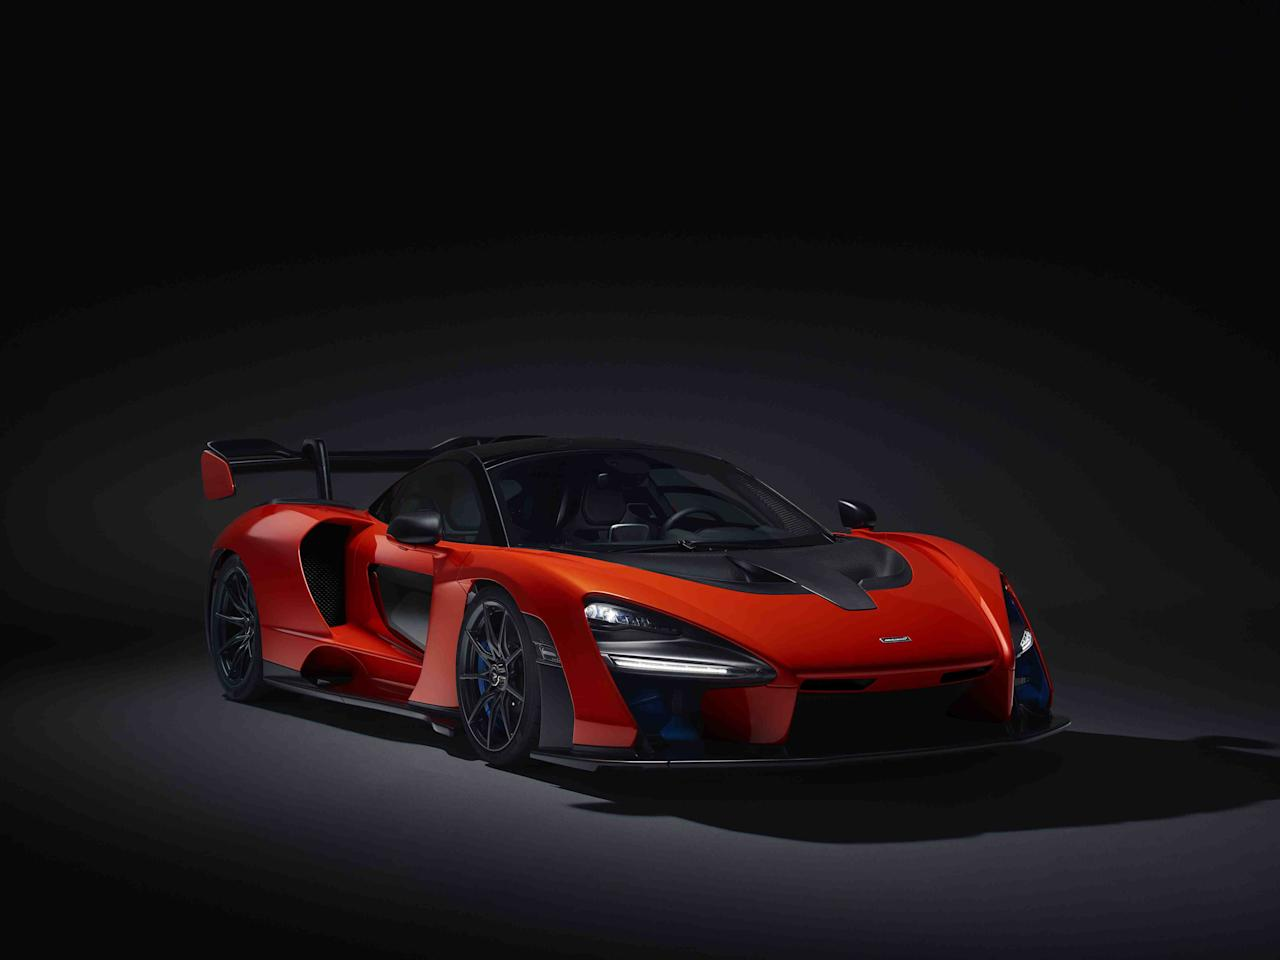 """<p>McLaren's new £750,000 hypercar is named after legendary Formula One motor racing champion, Ayrton Senna. It's billed as """"the most extreme McLaren road car yet"""". </p>"""